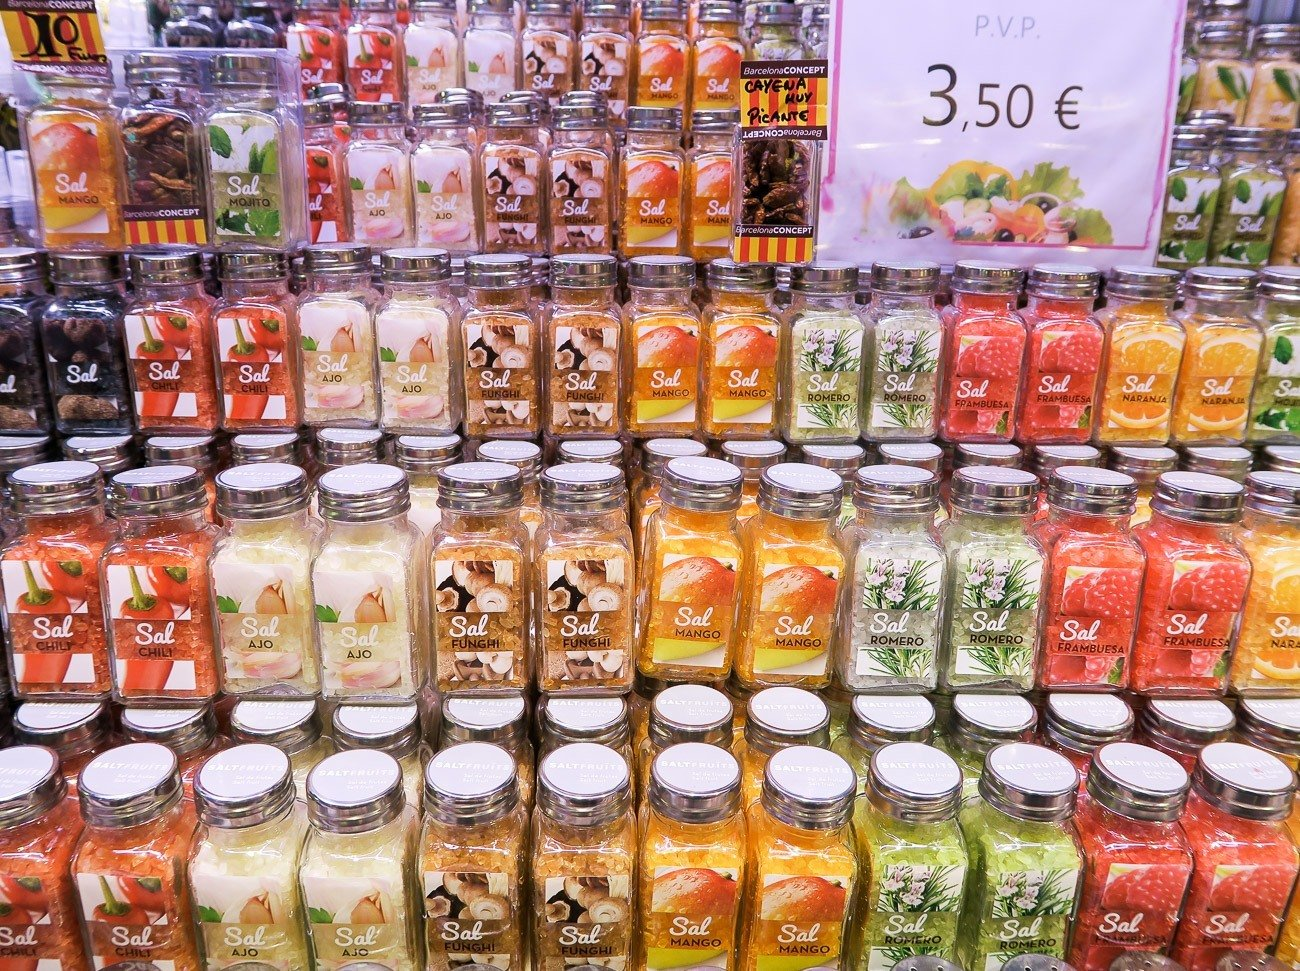 Flavored salts at La Boqueria Market in Barcelona